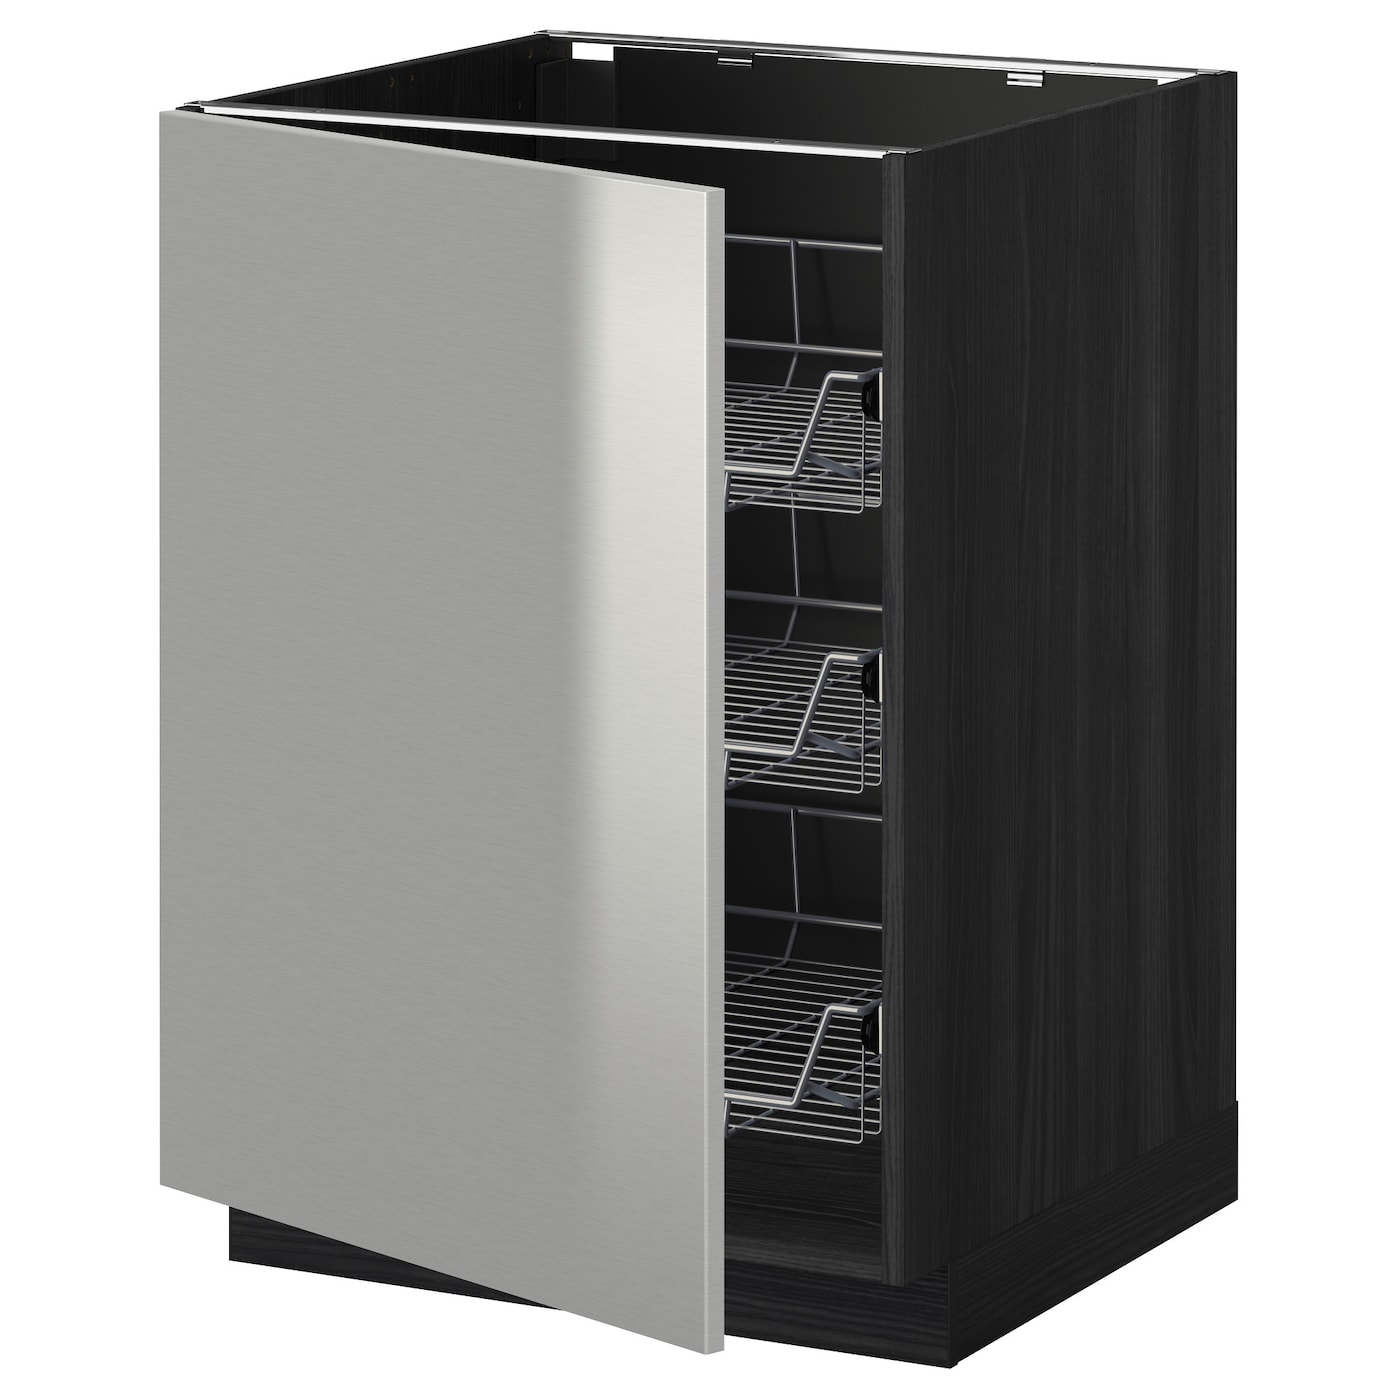 Metod base cabinet with wire baskets black grevsta for Stainless steel kitchen base cabinets